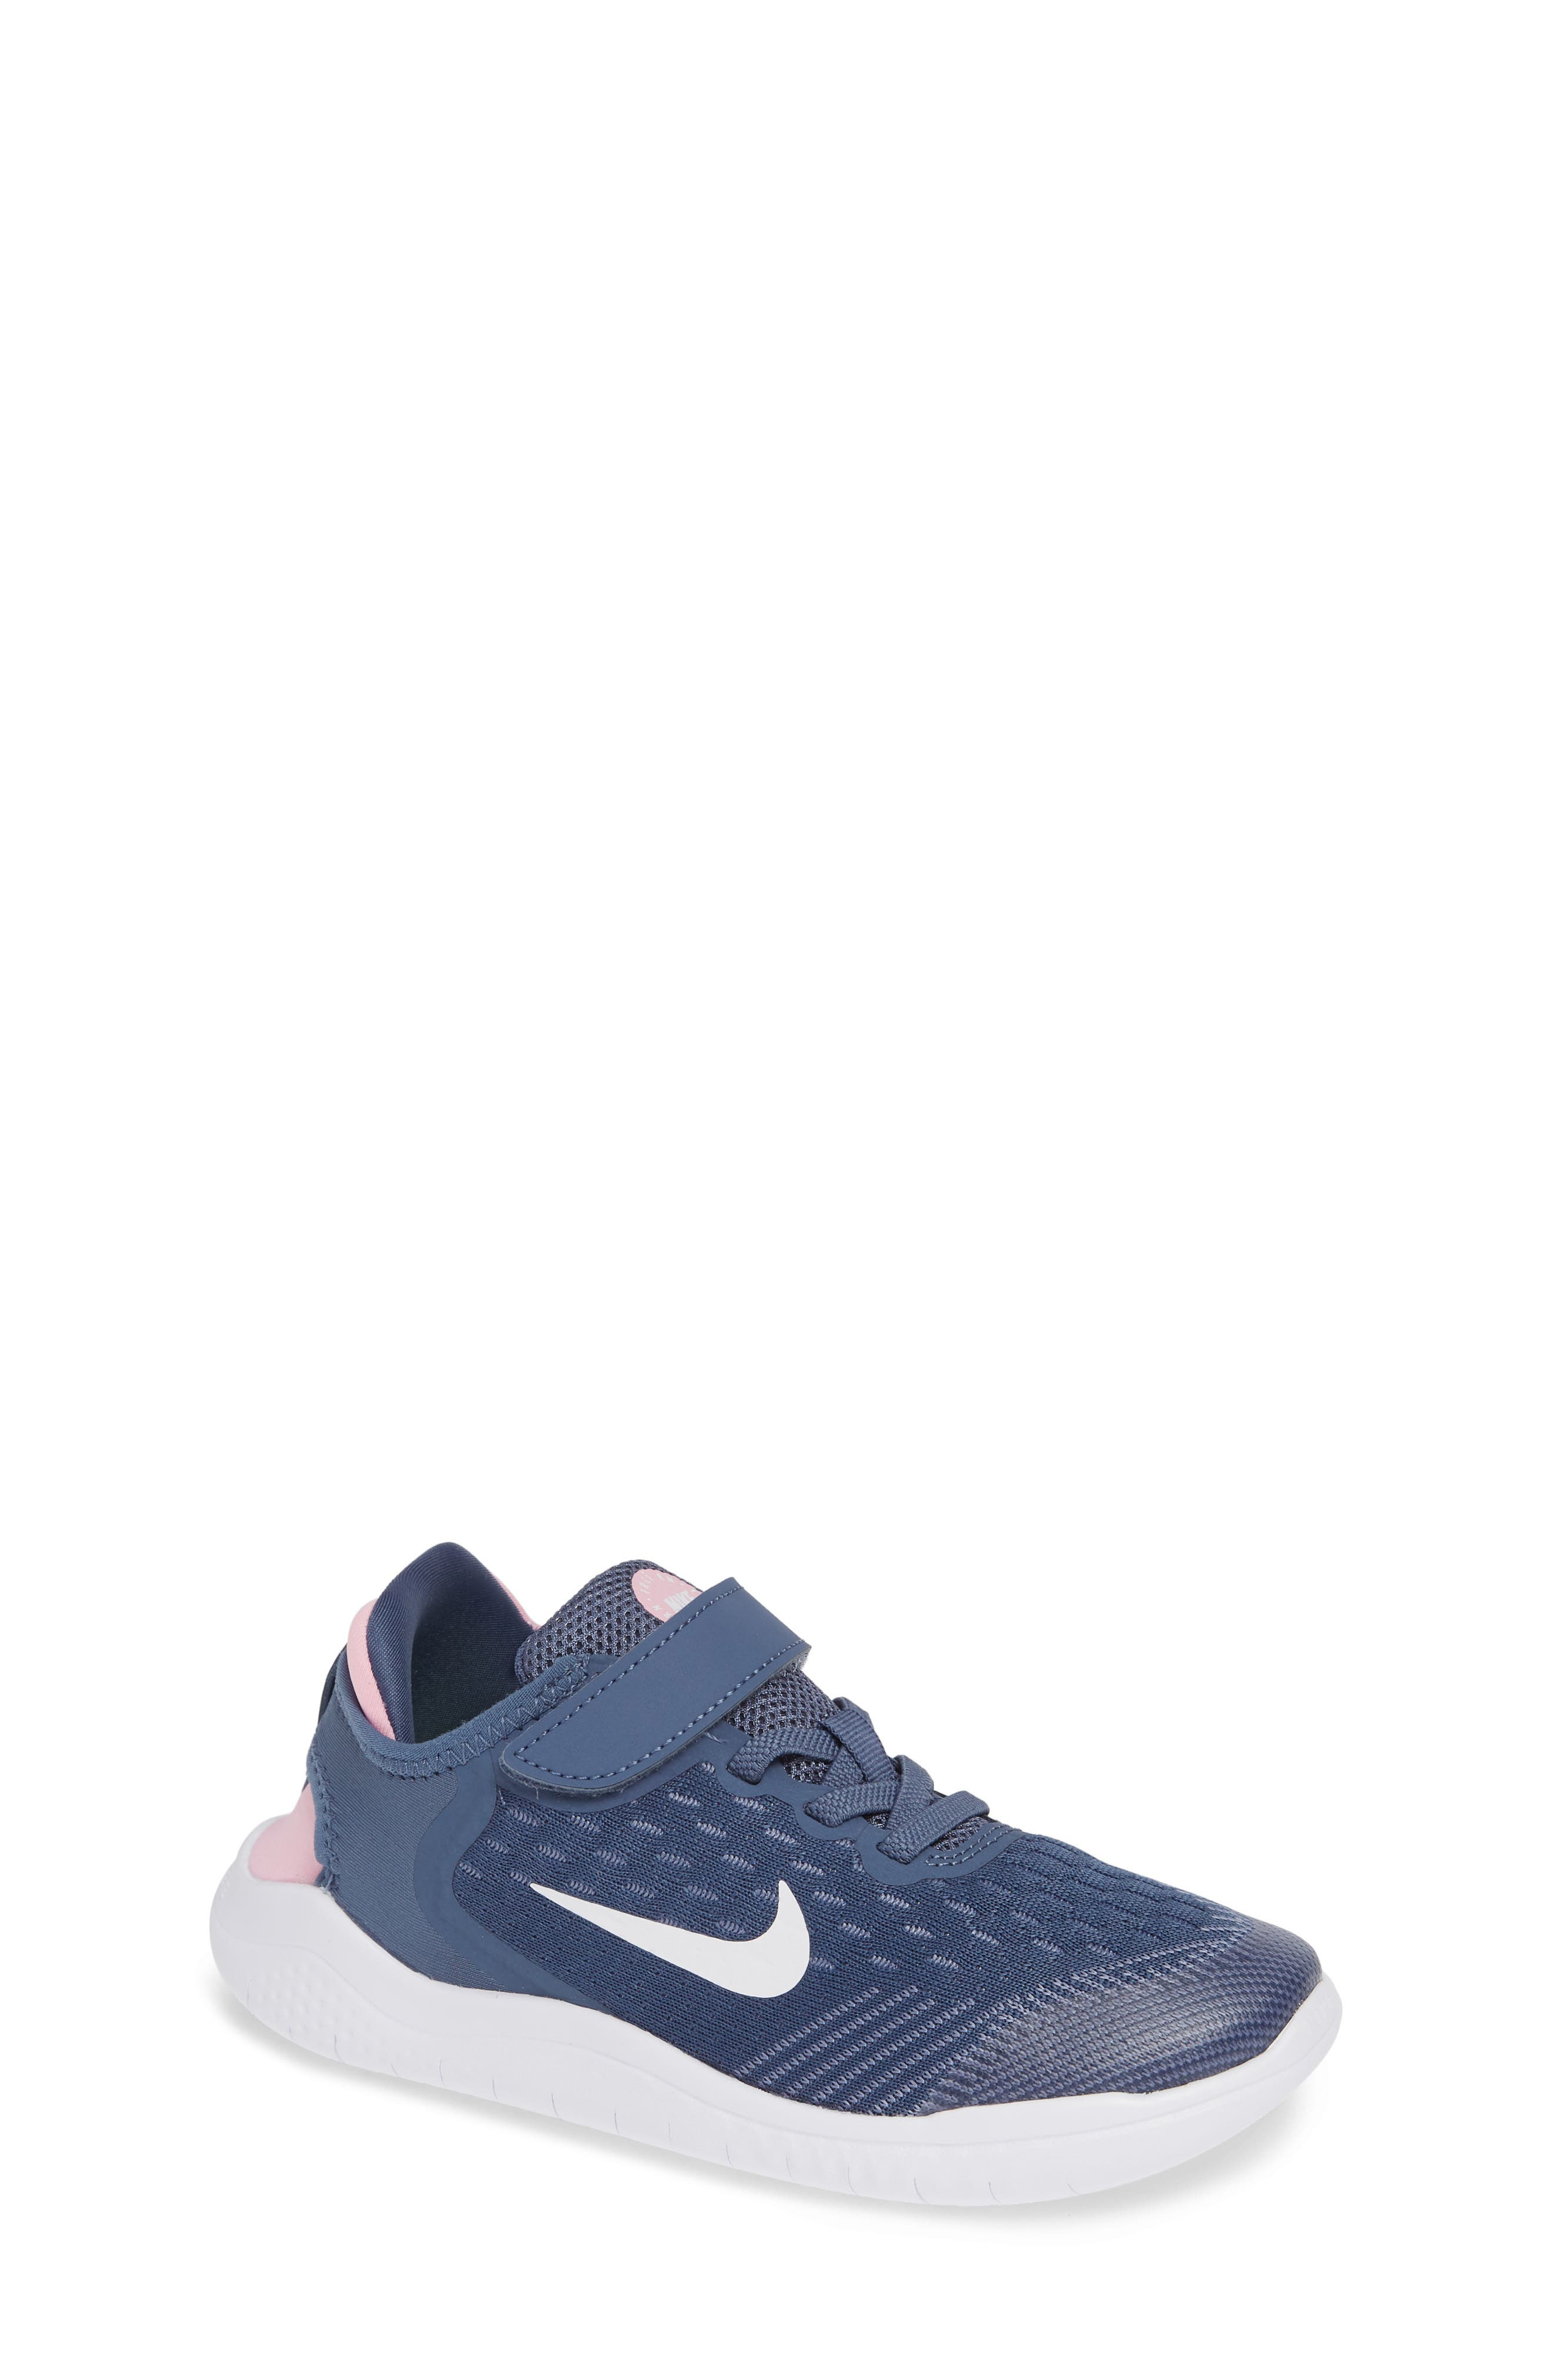 Free RN Running Shoe,                         Main,                         color, BLUE/ WHITE/ SLATE/ PINK